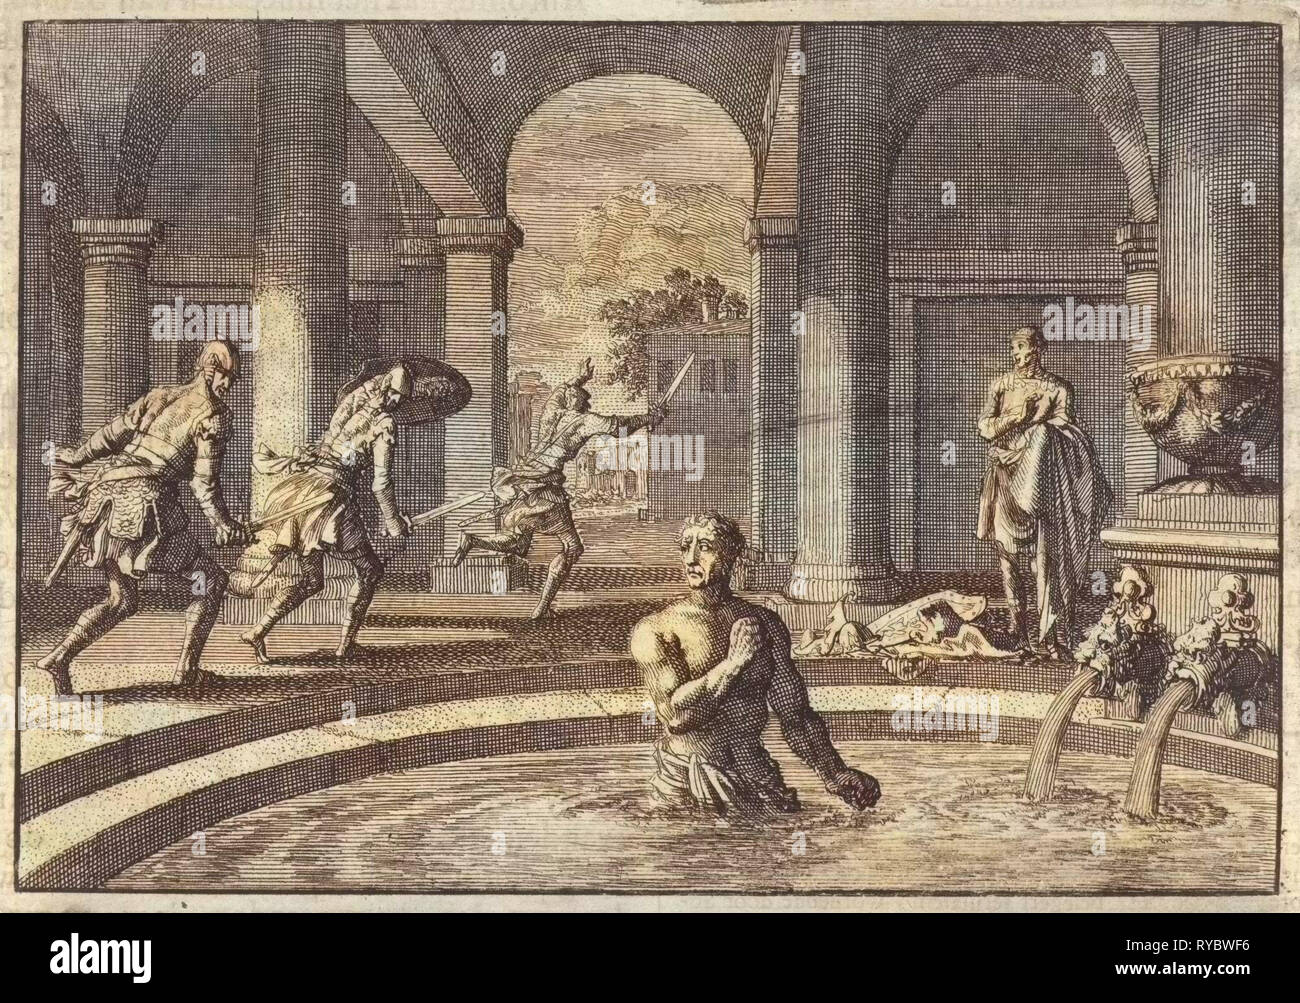 Armed enemies flee when they see Herod in bath after his victory over the army of Antigonus, Jan Luyken, Pieter Mortier, 1704 Stock Photo